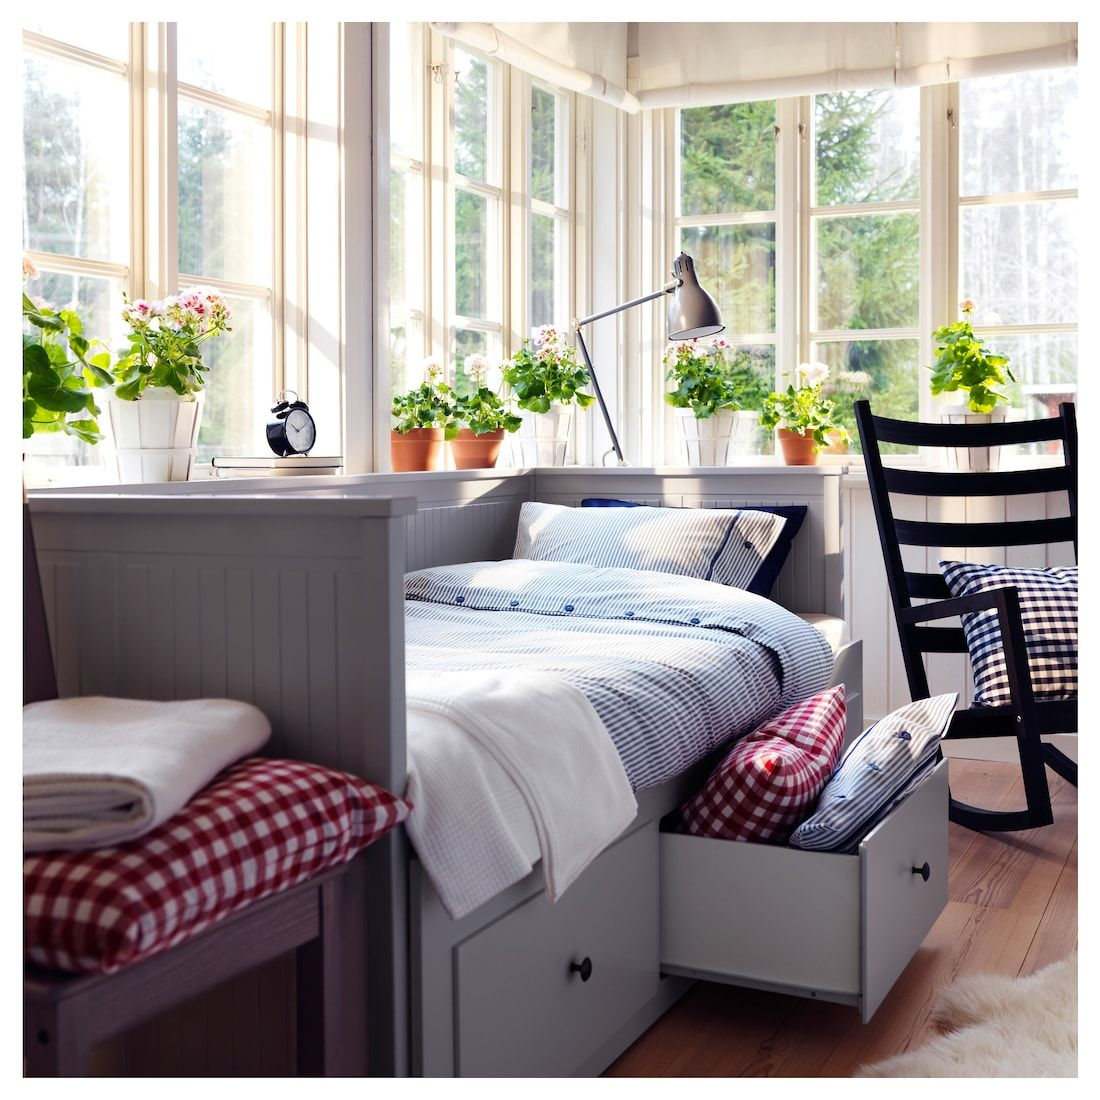 Hemnes Daybed Frame With 3 Drawers Gray Ikea In 2020 Ikea Hemnes Daybed Murphy Bed Ikea Hemnes Day Bed